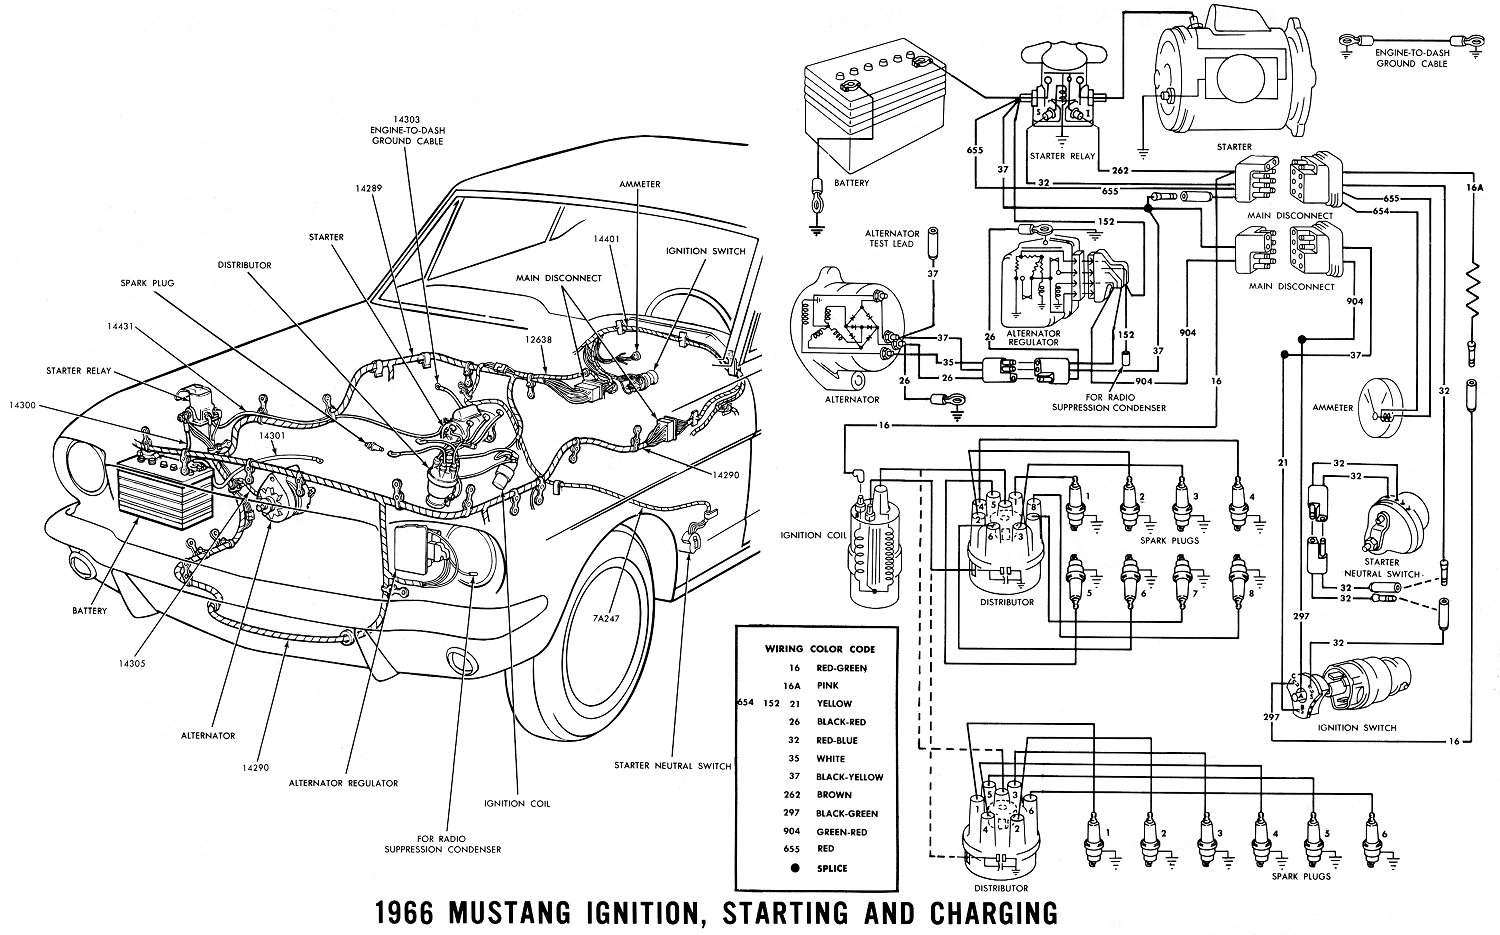 66ignit 1966 mustang wiring diagrams average joe restoration 68 mustang alternator wiring diagram at nearapp.co